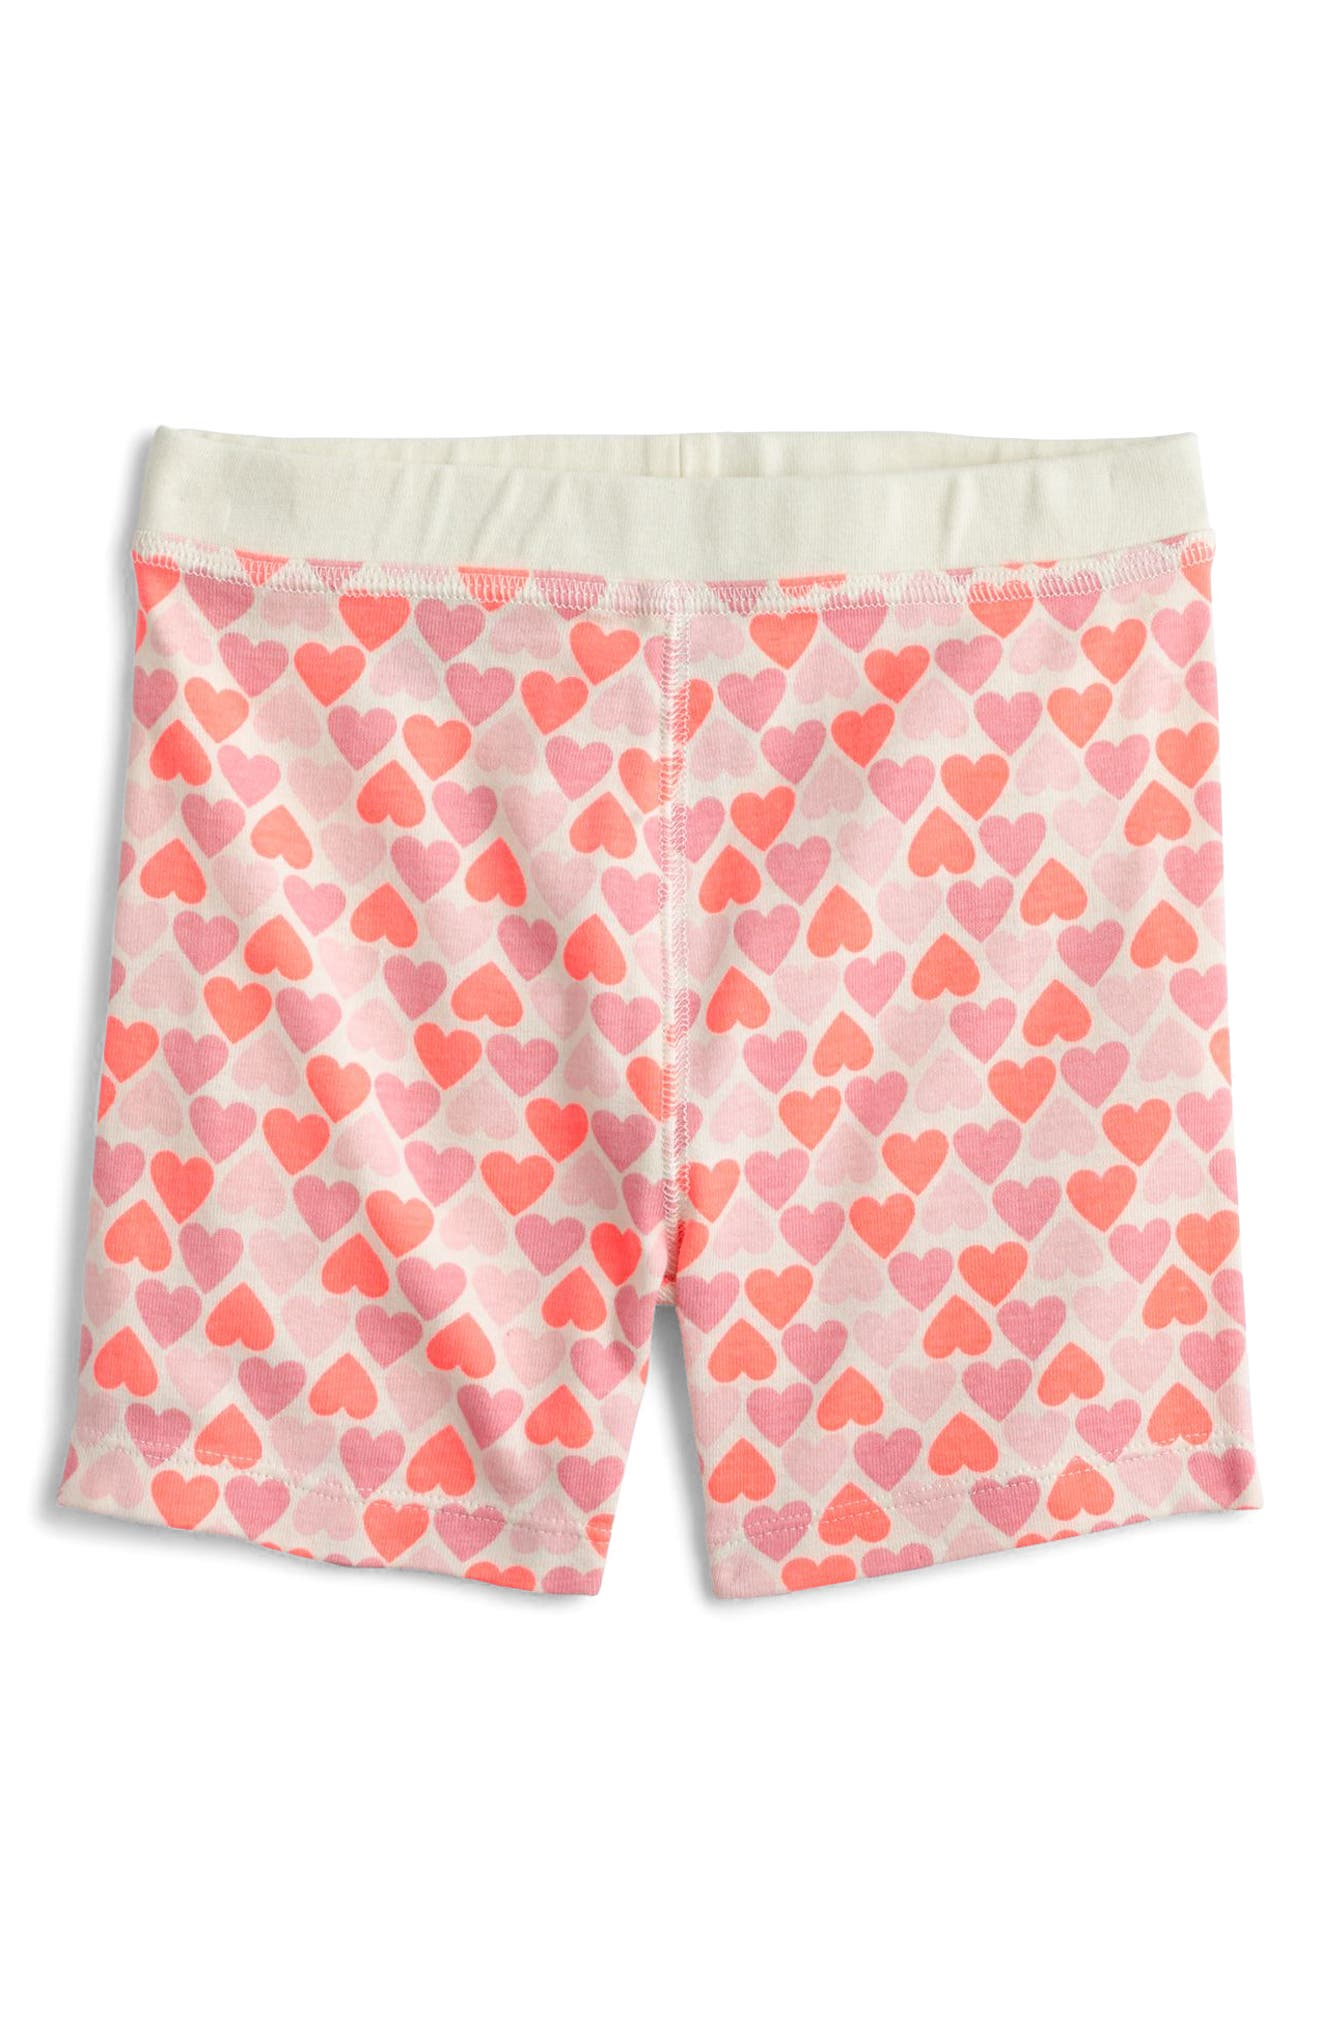 Stacked Hearts Fitted Two-Piece Pajamas,                             Alternate thumbnail 3, color,                             Neon Sunrise